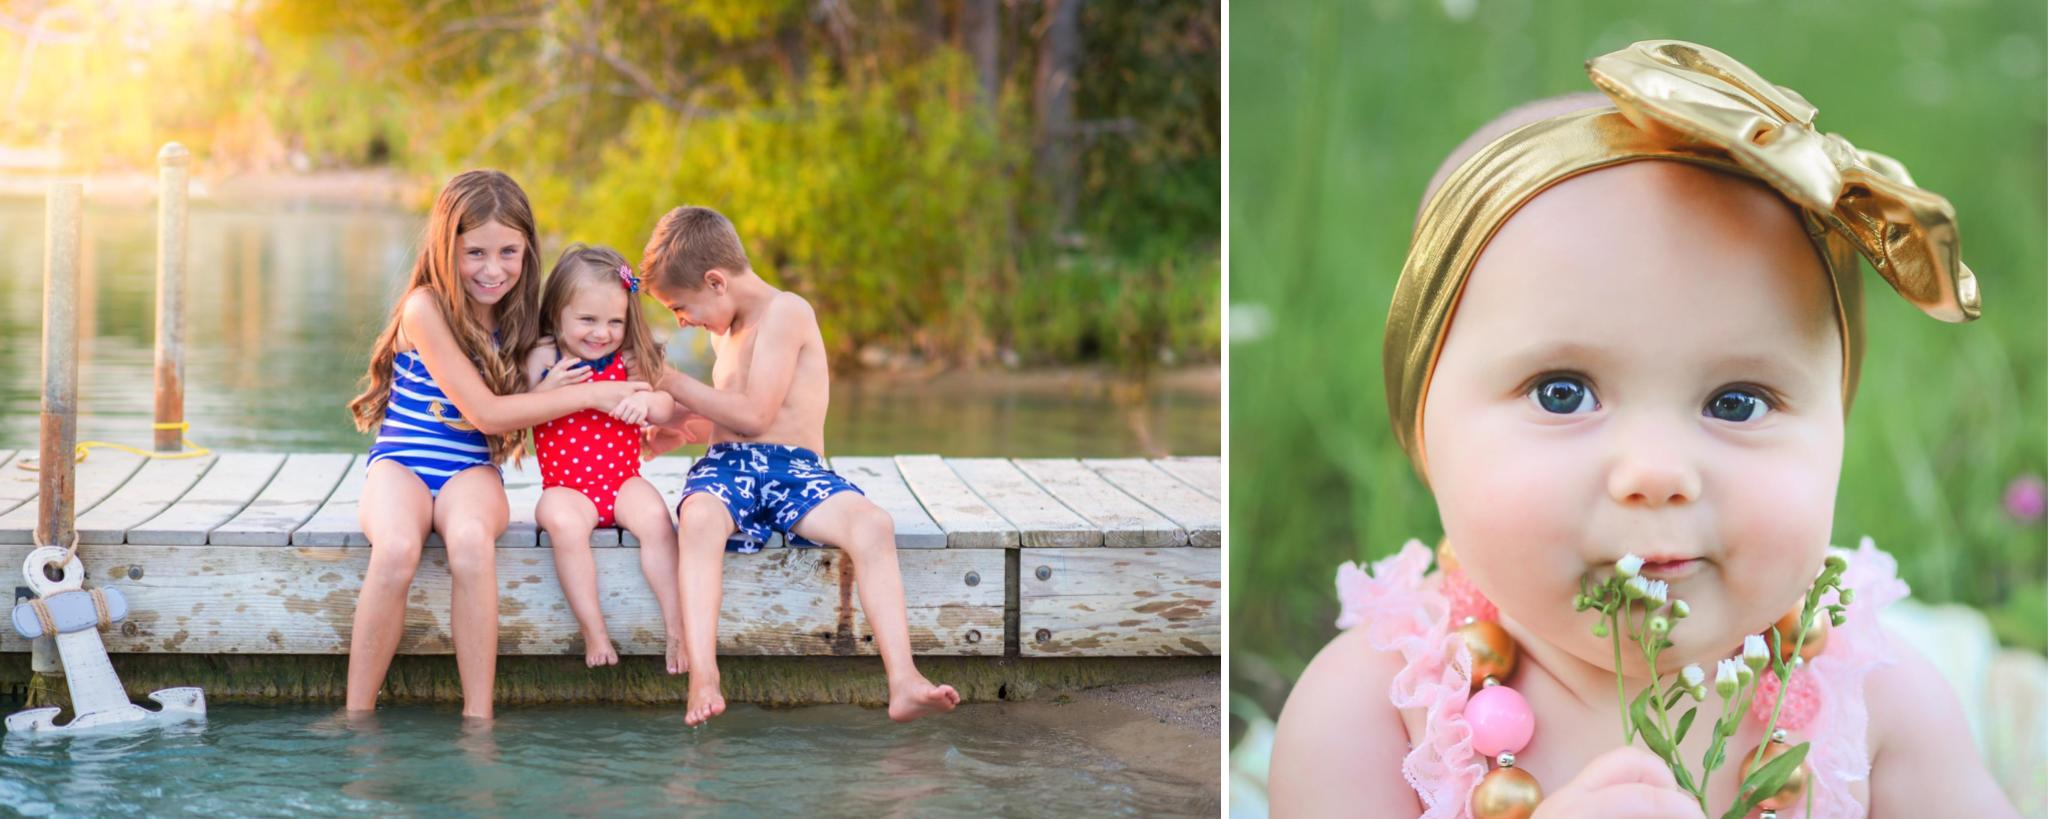 outdoor childrens session and beach and in a field